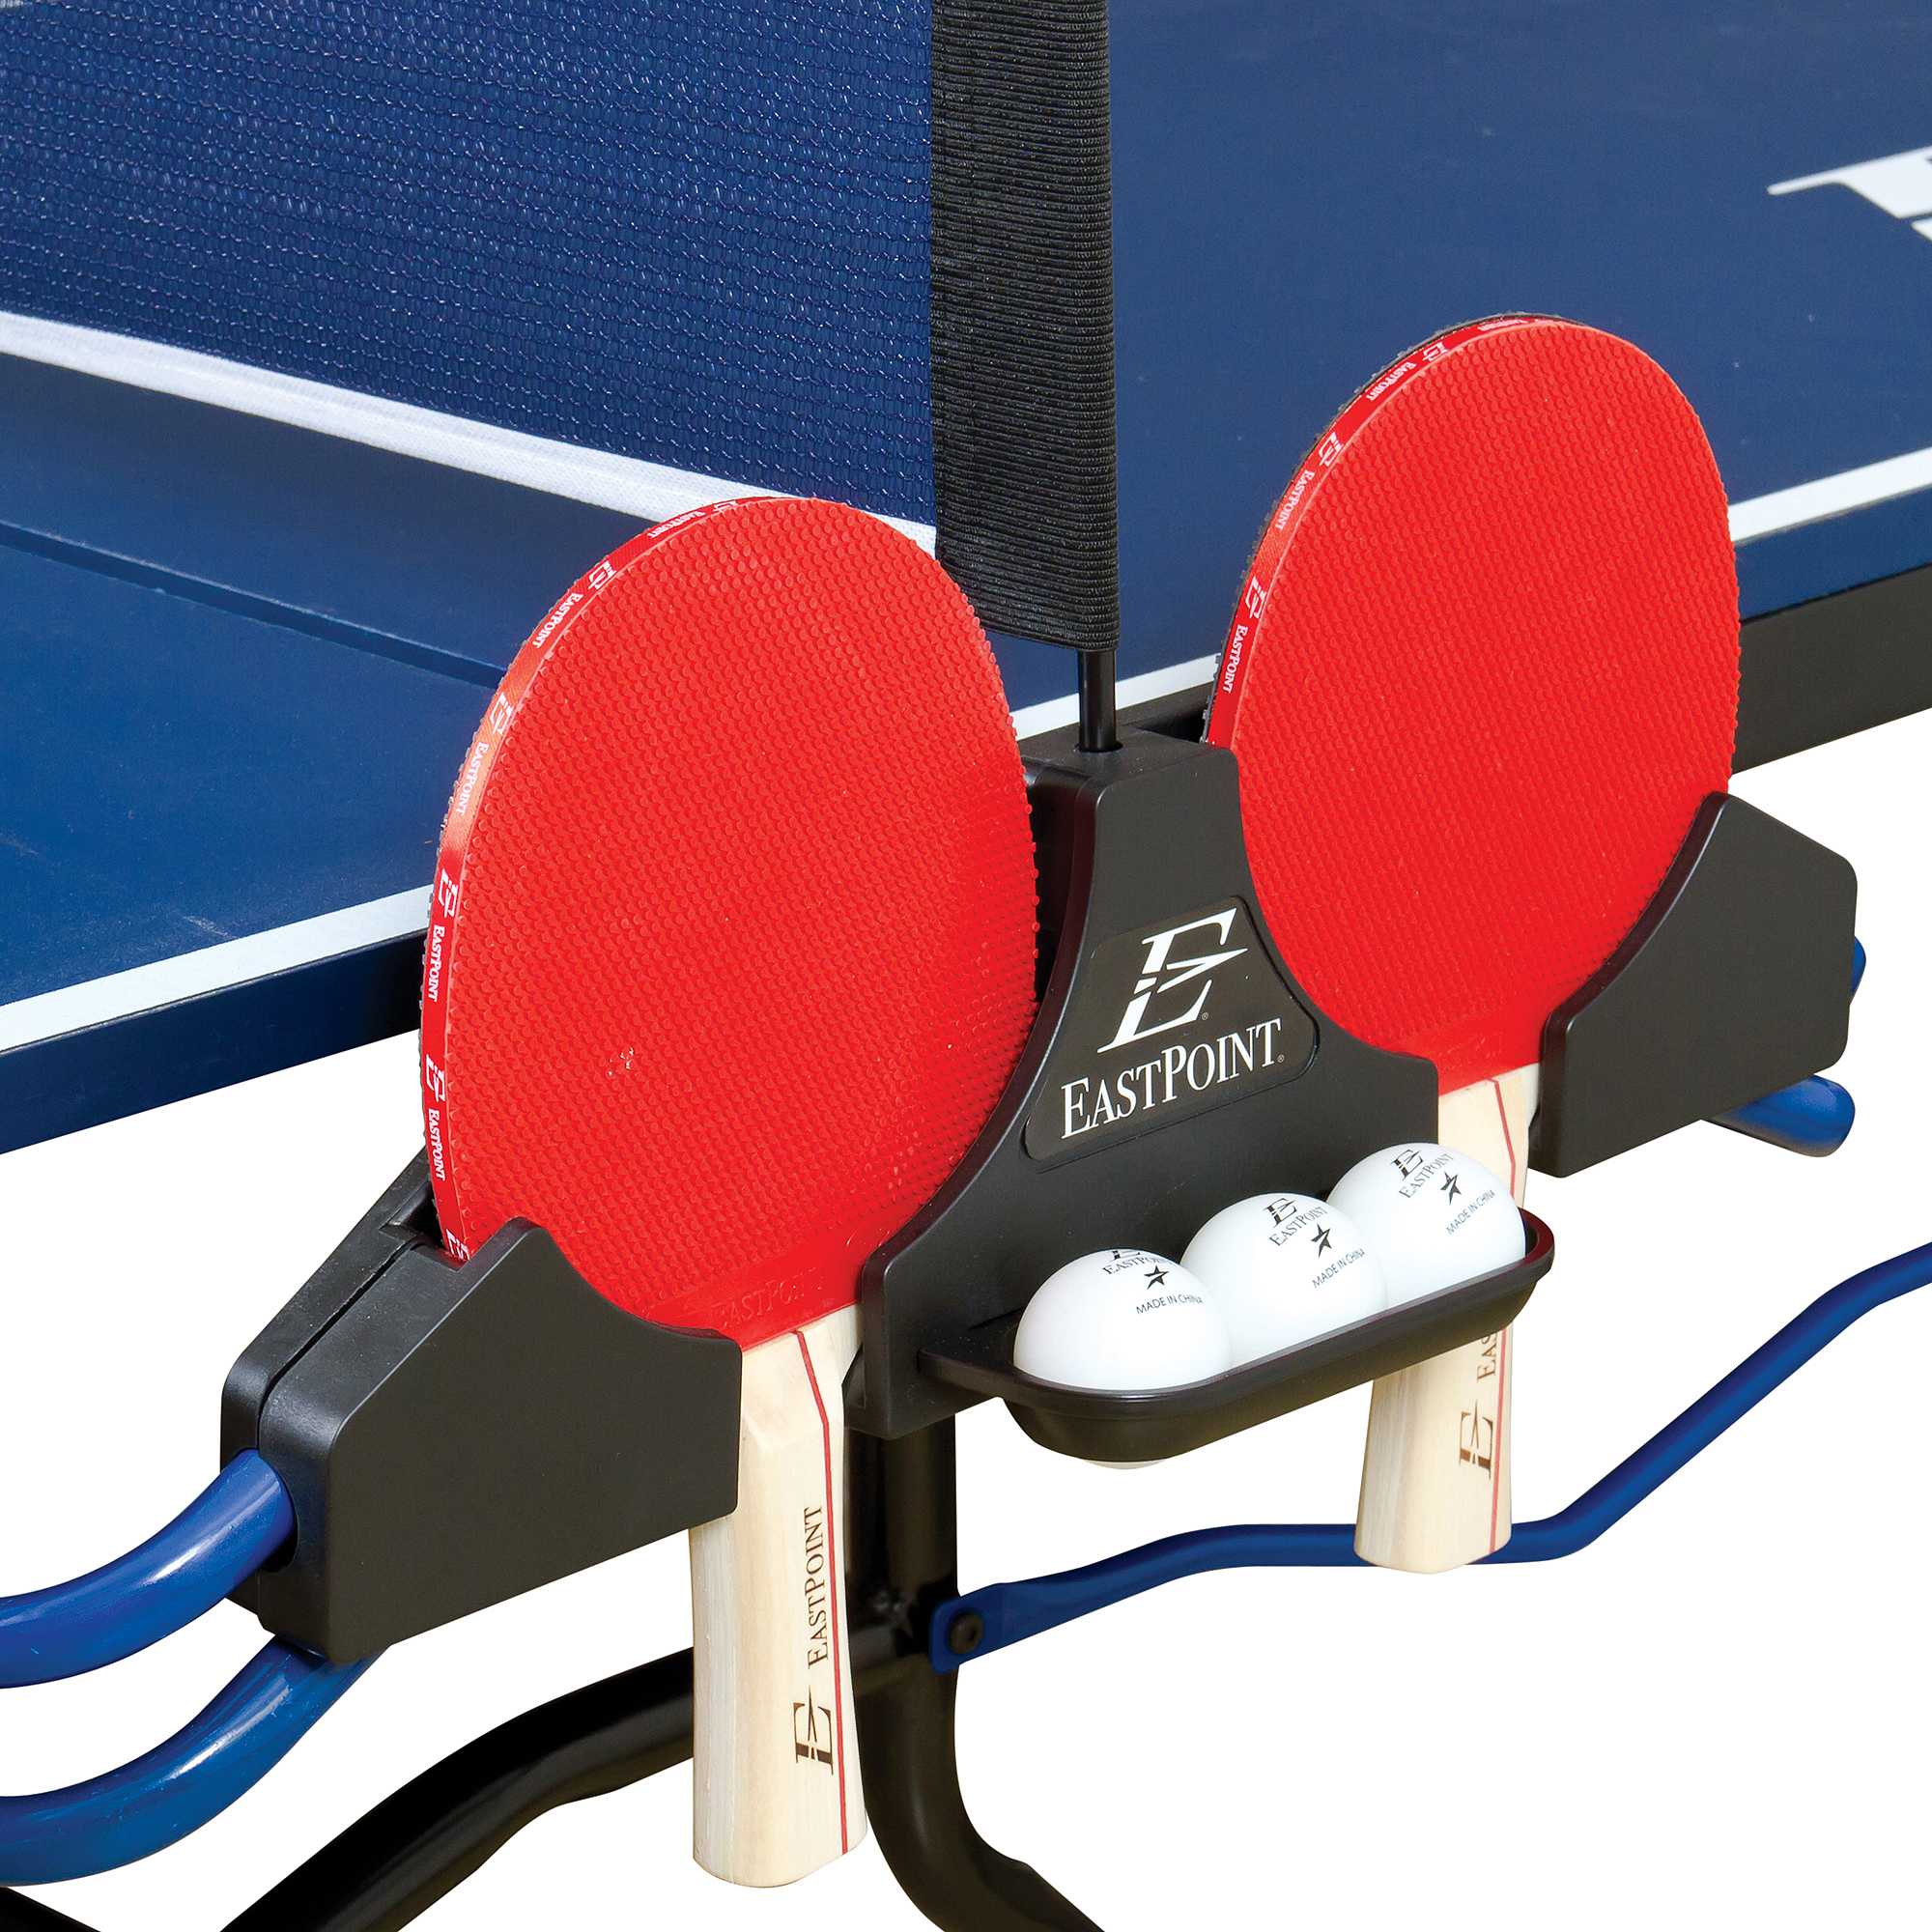 EastPoint Sports EPS 3000 2 Piece Table Tennis Table U2013 18mm Top Image 3 Of